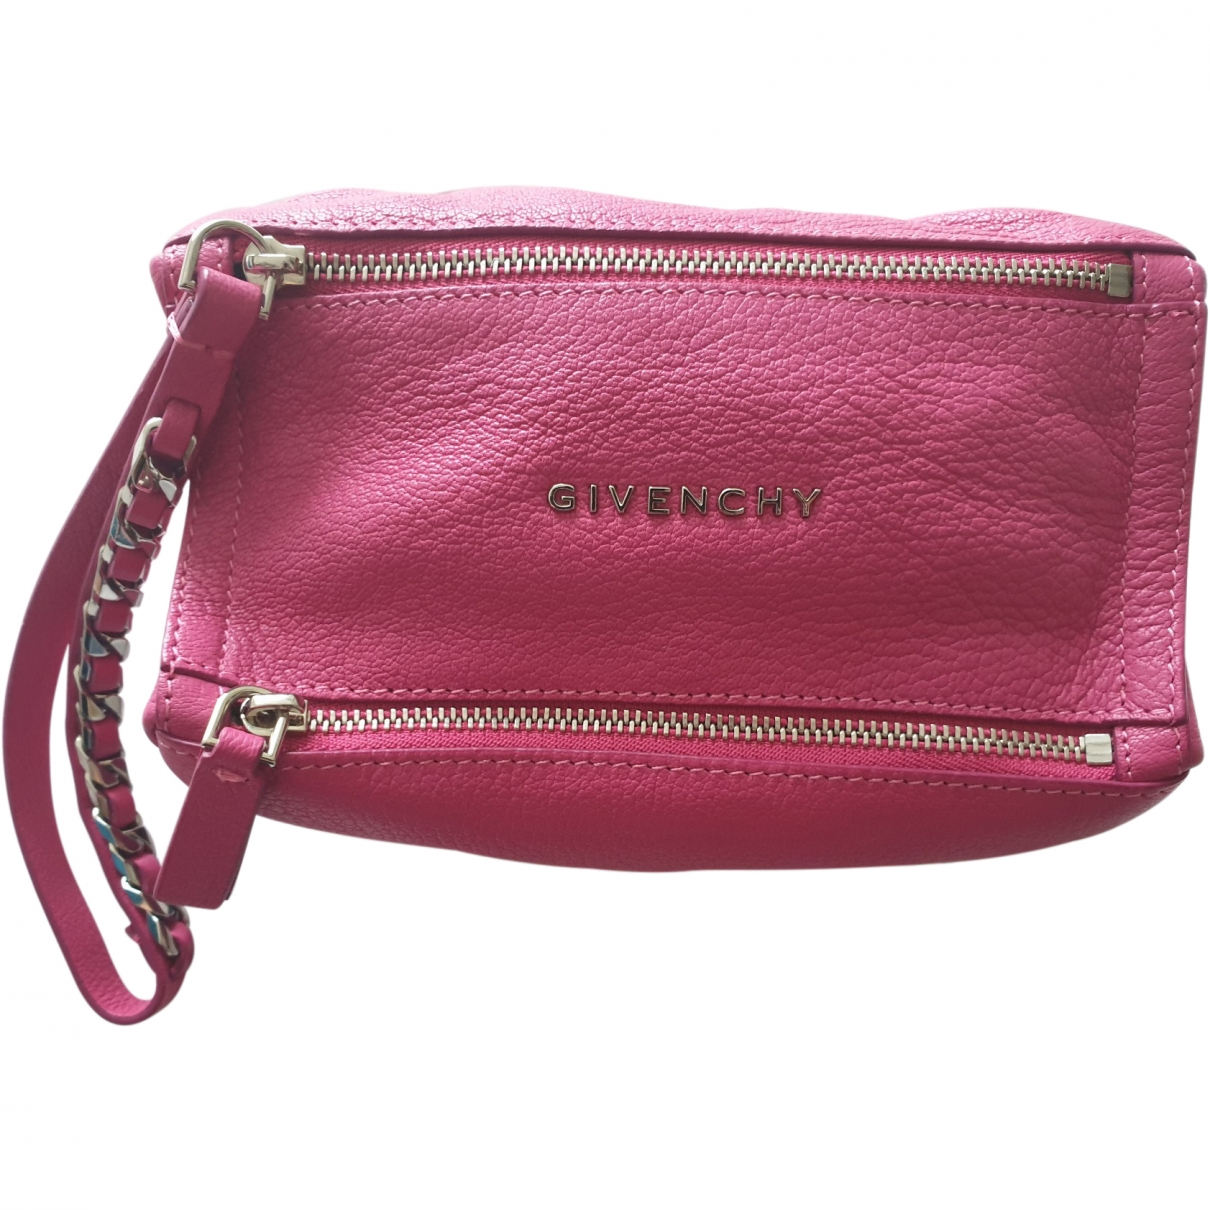 Givenchy Pandora Pink Leather Clutch bag for Women \N